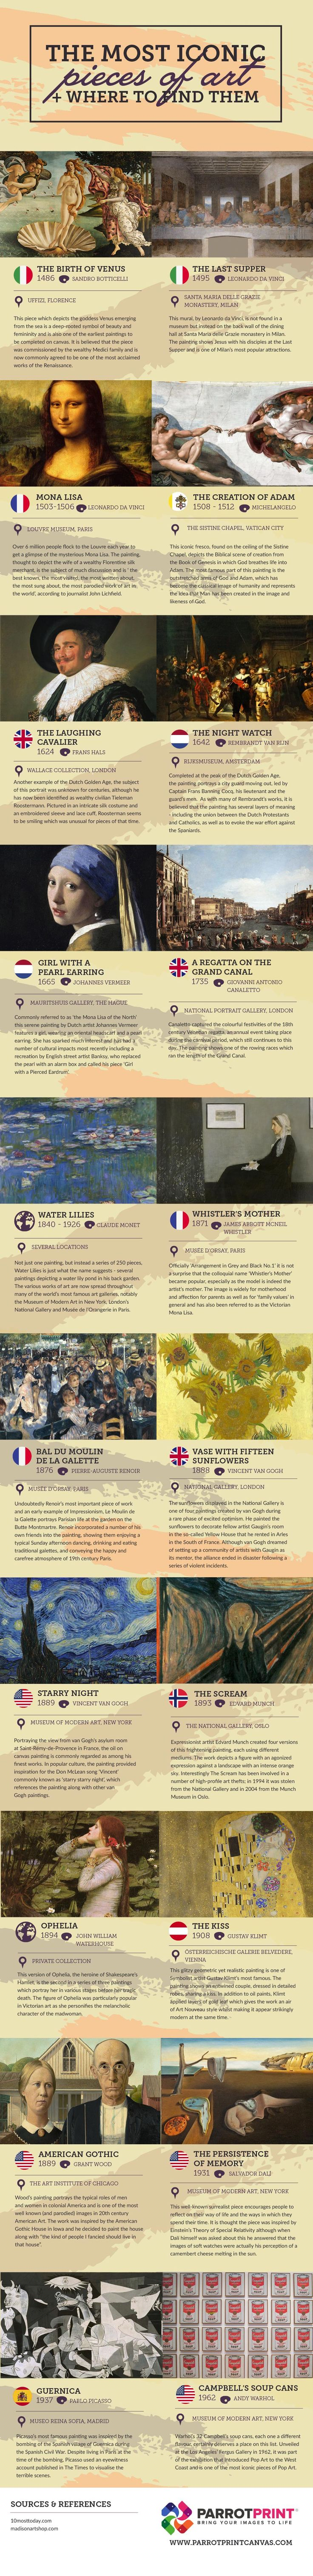 Love art and want to see some of the world's most famous pieces. Here's an infographic that tells you where they are.